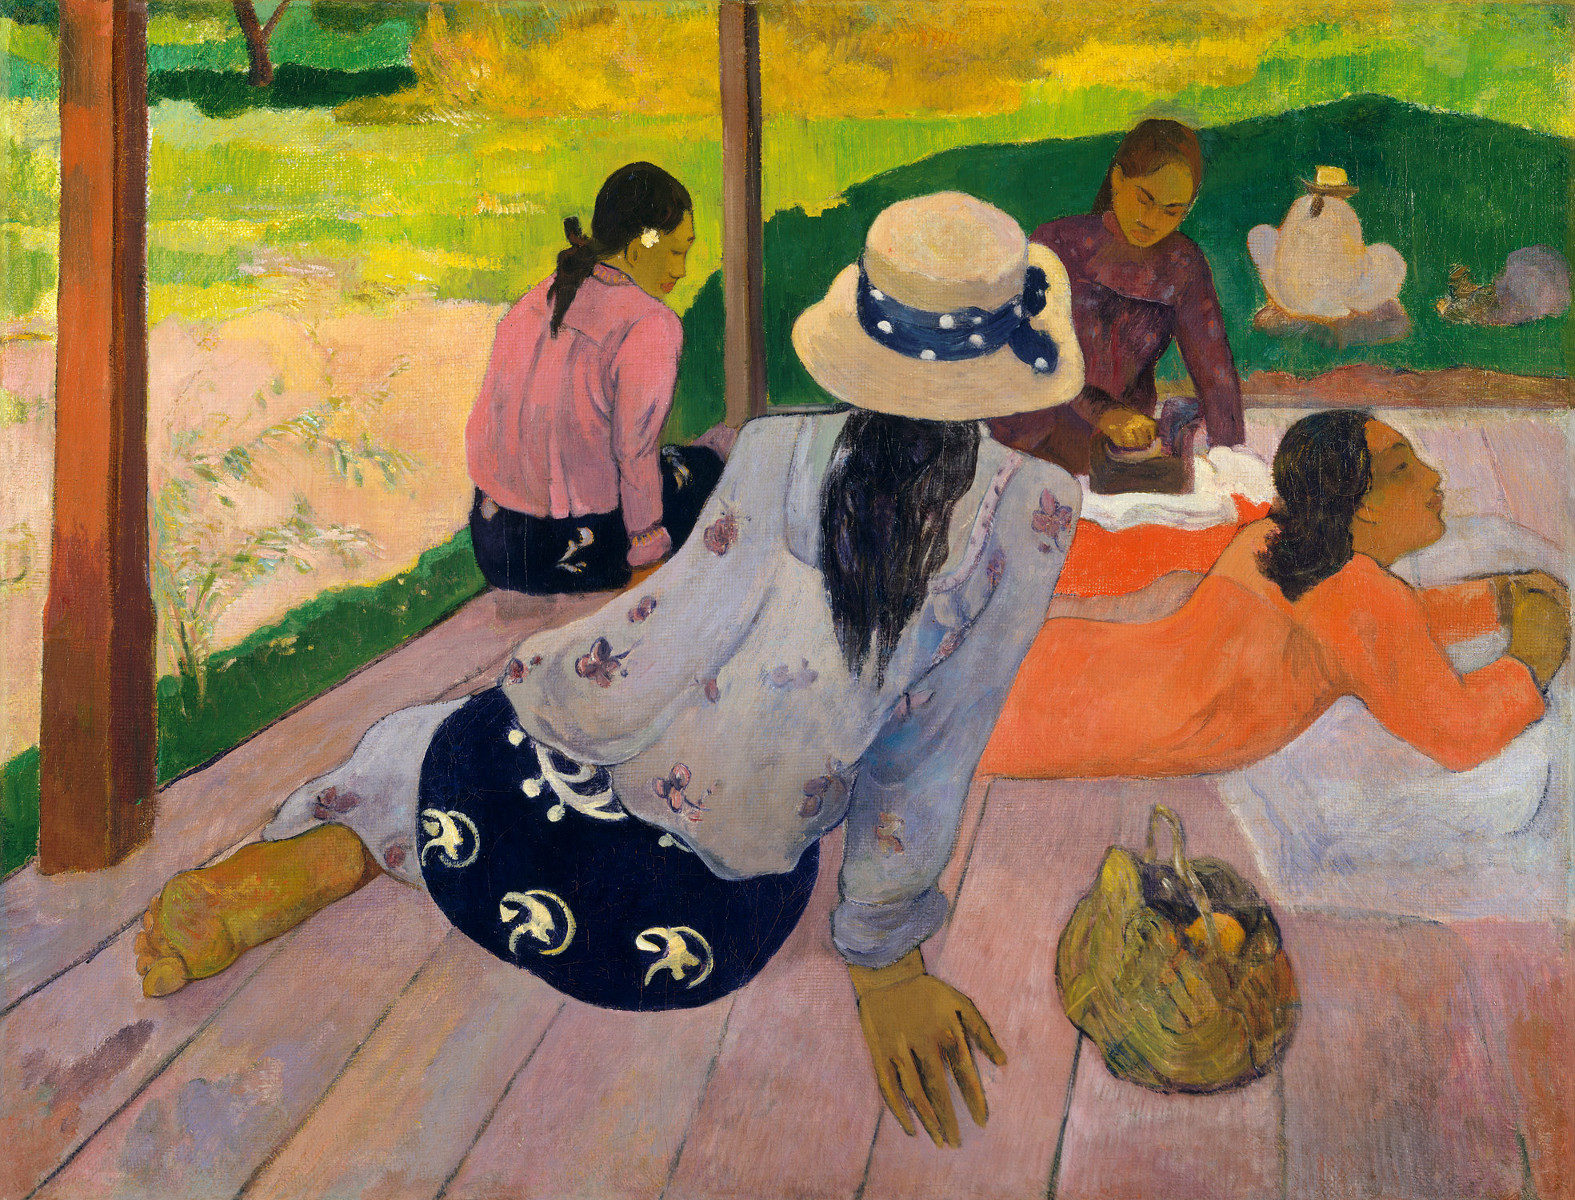 La Siesta di Paul Gauguin